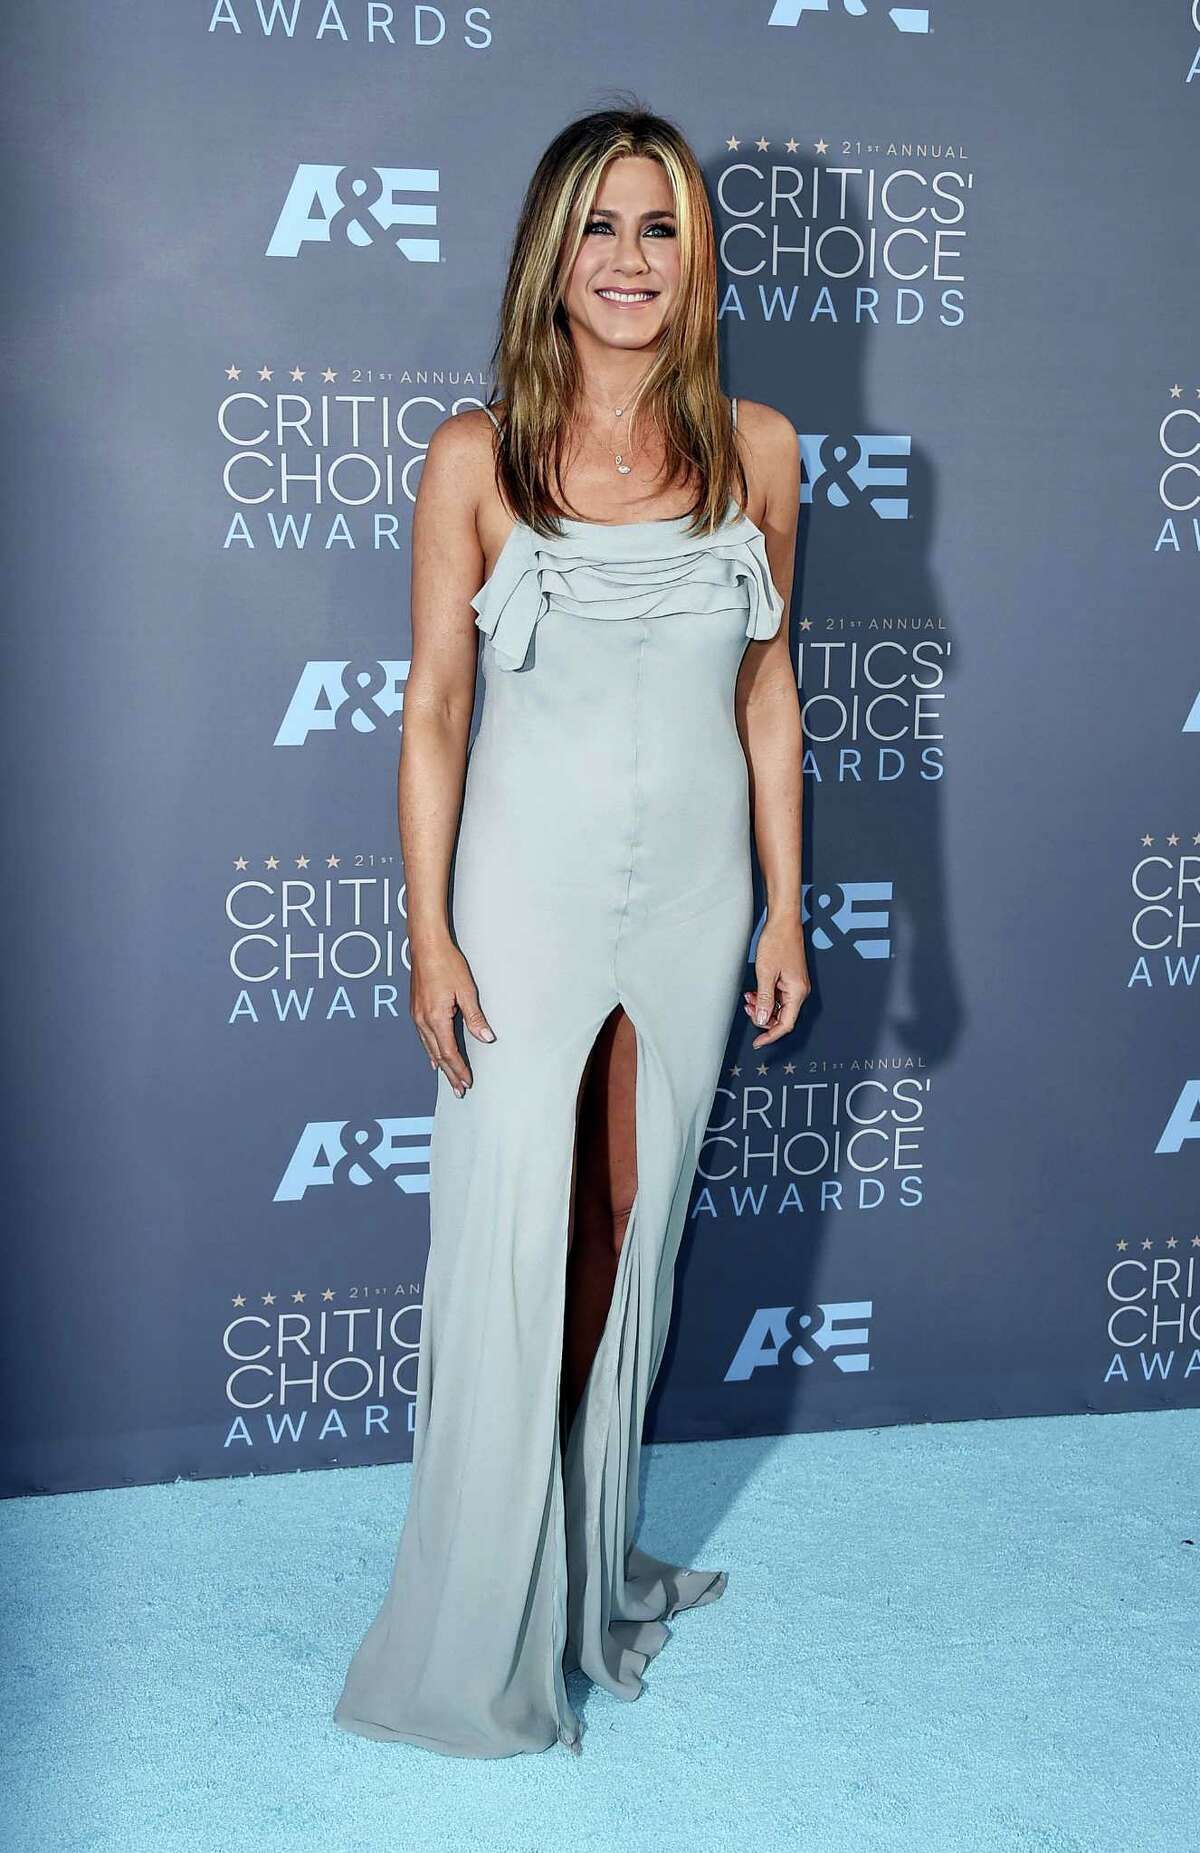 """In this Jan. 17, 2016, file photo, Jennifer Aniston arrives at the 21st annual Critics' Choice Awards at the Barker Hangar in Santa Monica, Calif. People Magazine has named Aniston its """"World's Most Beautiful Woman"""" of 2016. The 47-year-old actress graces the cover of People's 27th annual """"World's Most Beautiful"""" double issue."""